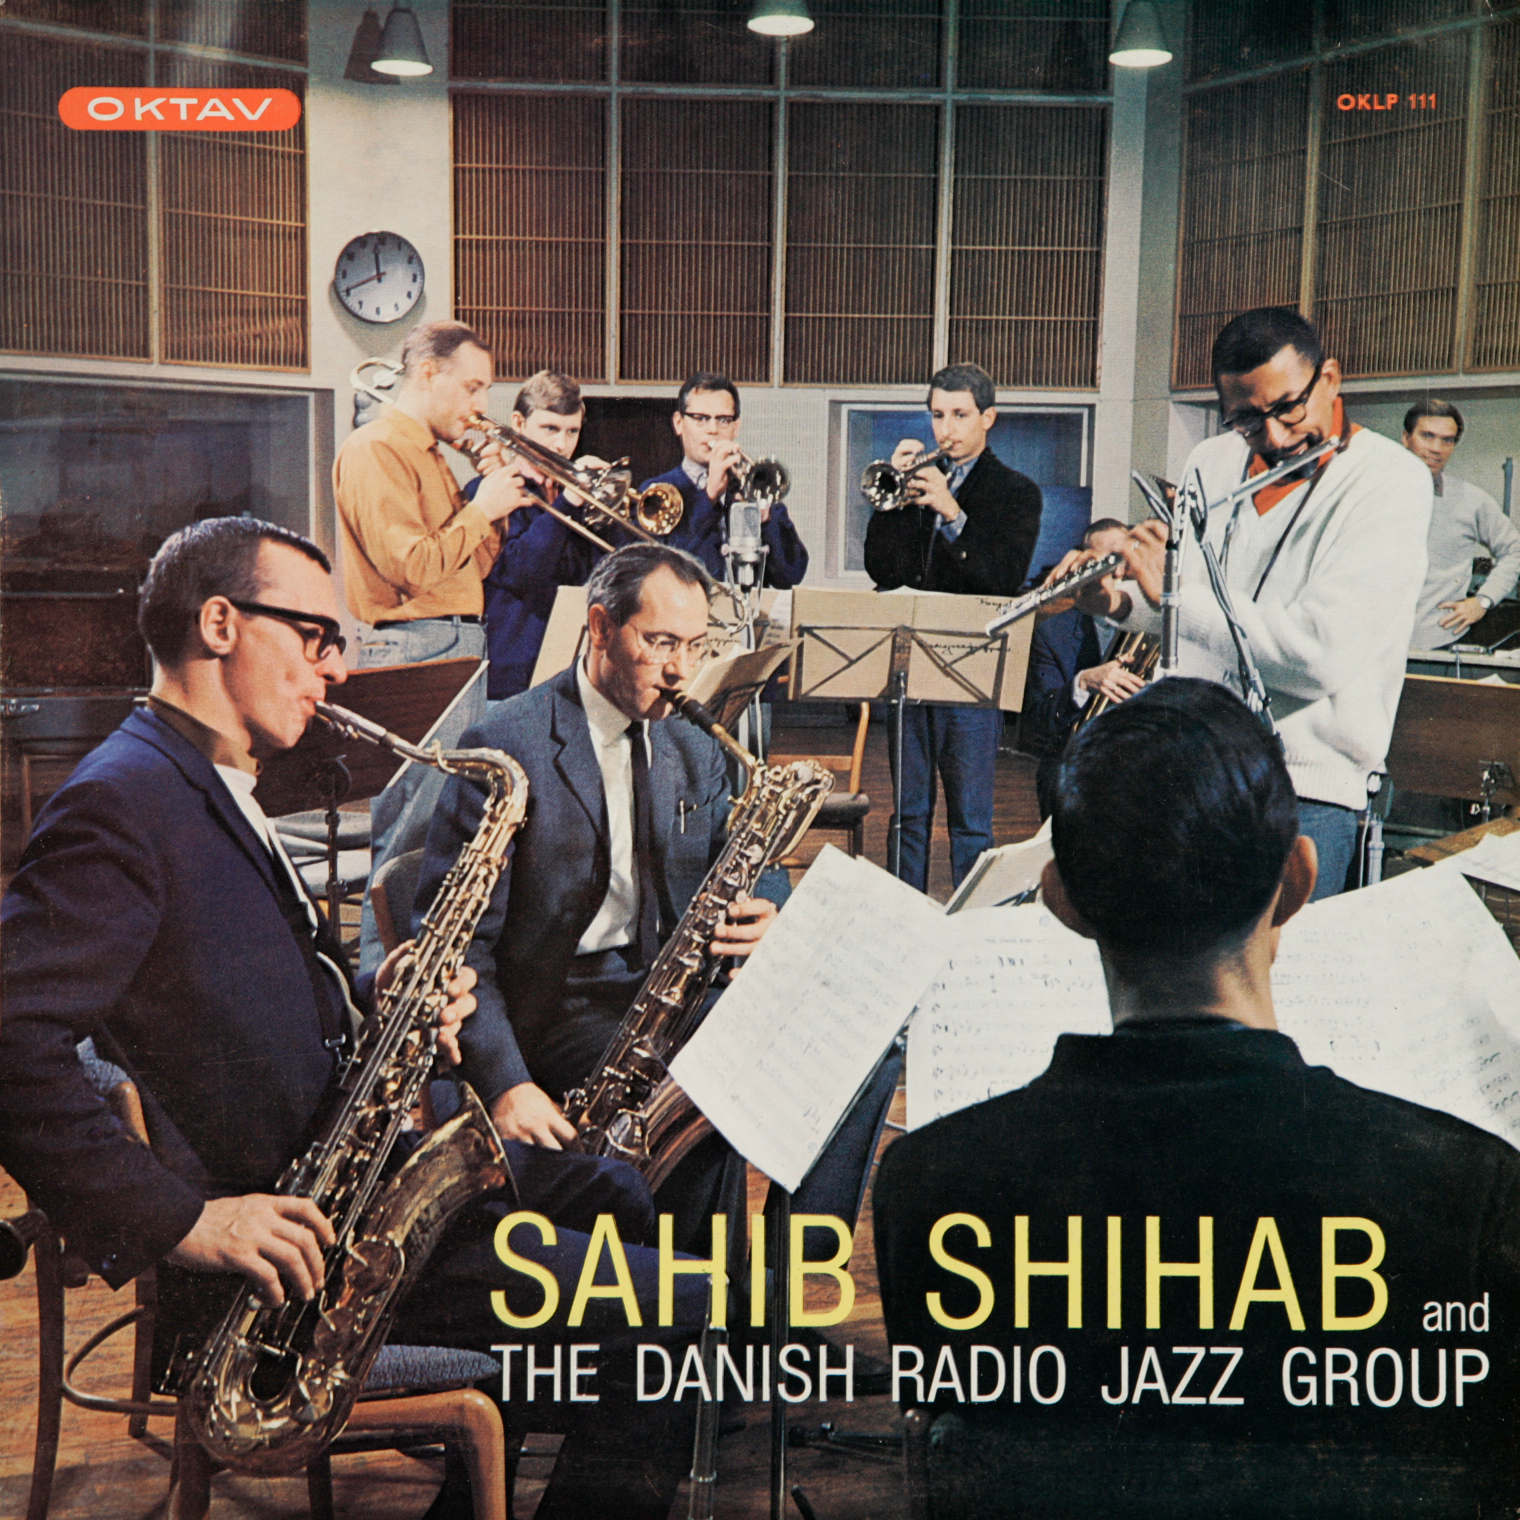 Sahib Shihab And The Danish Radio Jazz Group Oktav OKLP 111 Vinyl LP